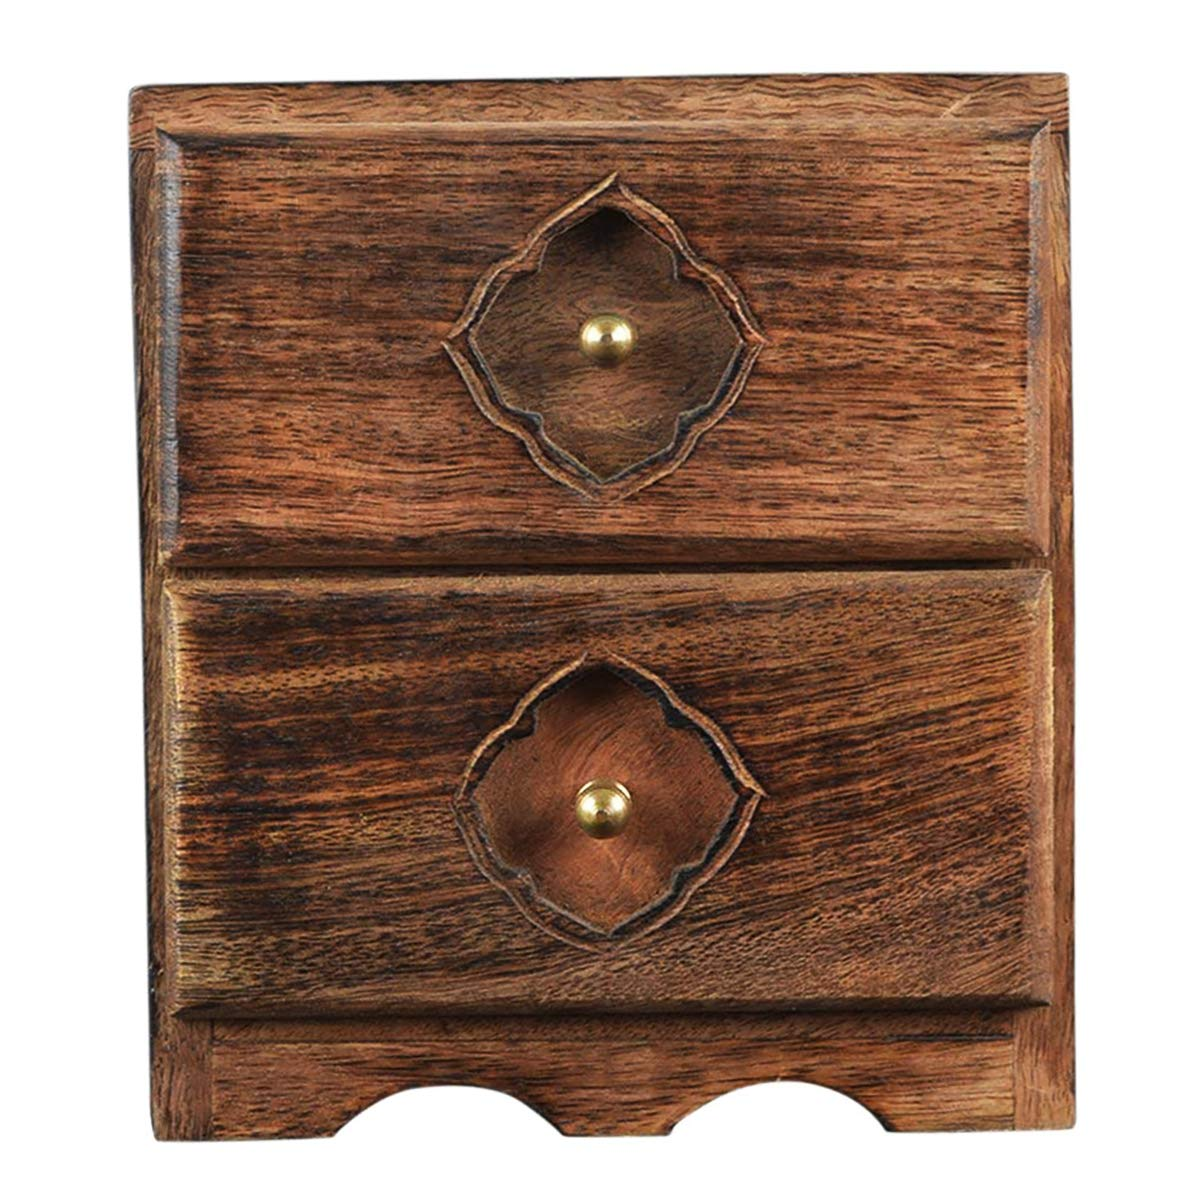 Storeindya Diwali Gifts Boxes Ideas Diwali Games Boxes Festive Décor Gifts for All decoration festival of lights Dipawali Diwali gifts Diwali puja Deepawali décorWooden Tea Box Chest Organizer Coffee Spices Holder 6 Compartments Kitchen Accessories Cases S